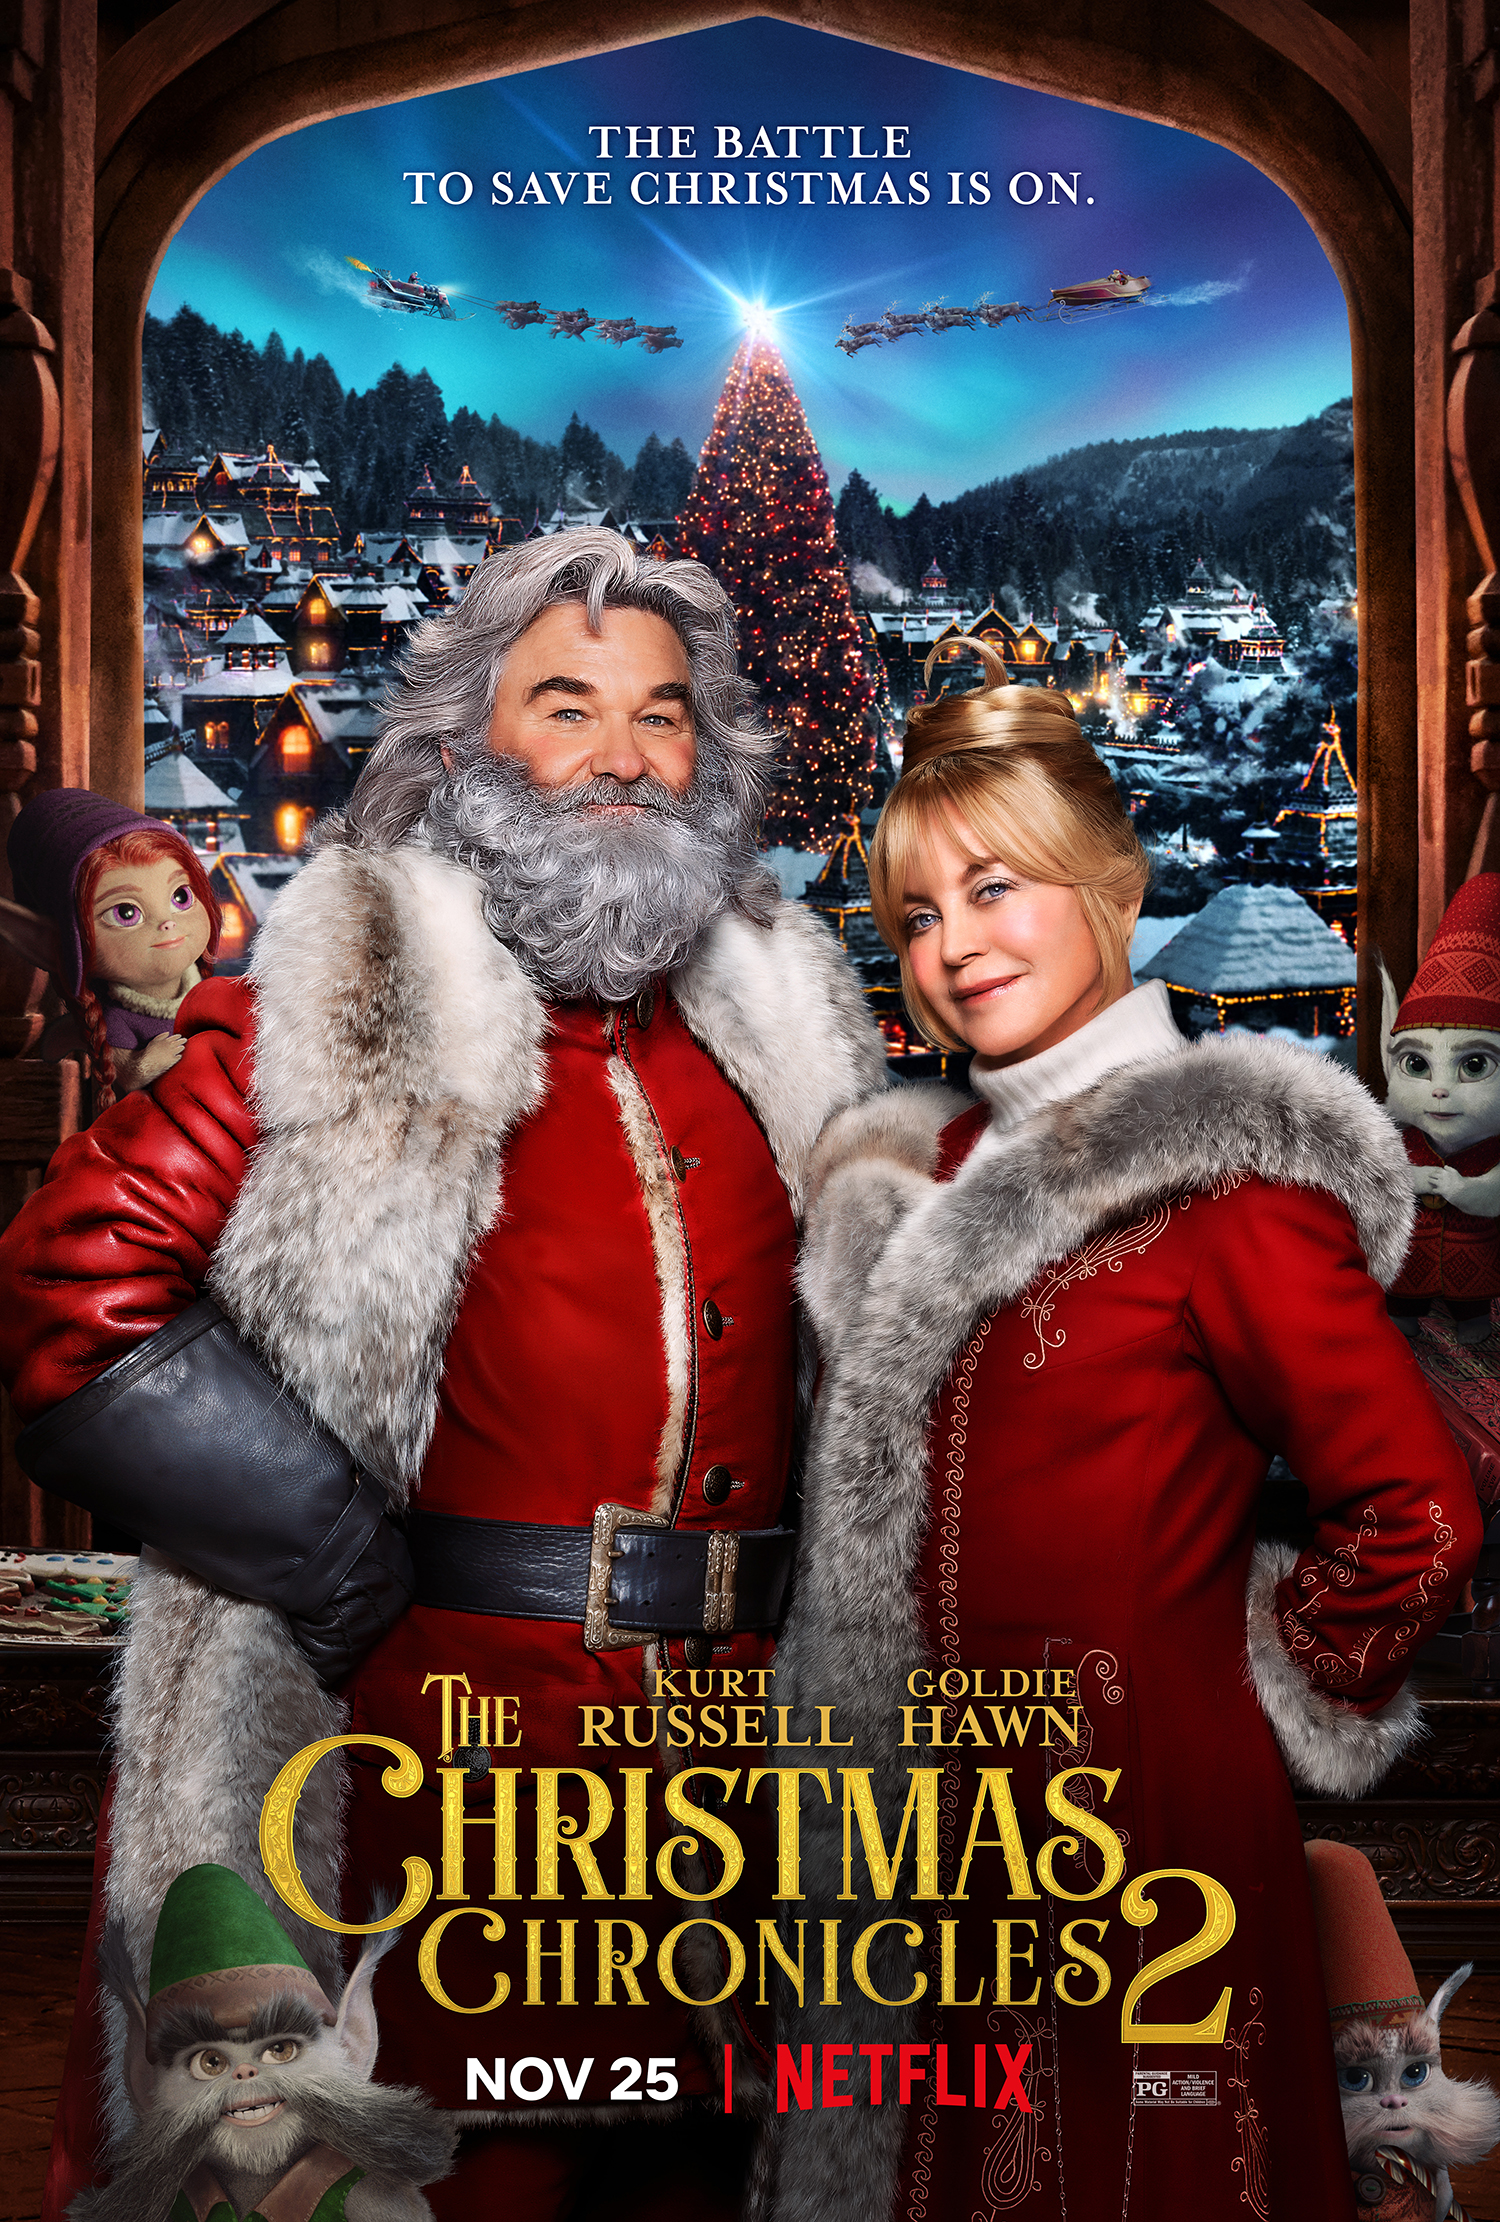 The Christmas Chronicles 2 (2020) Hindi ORG Dual Audio 1080p NF HDRip ESubs 1.6GB Download